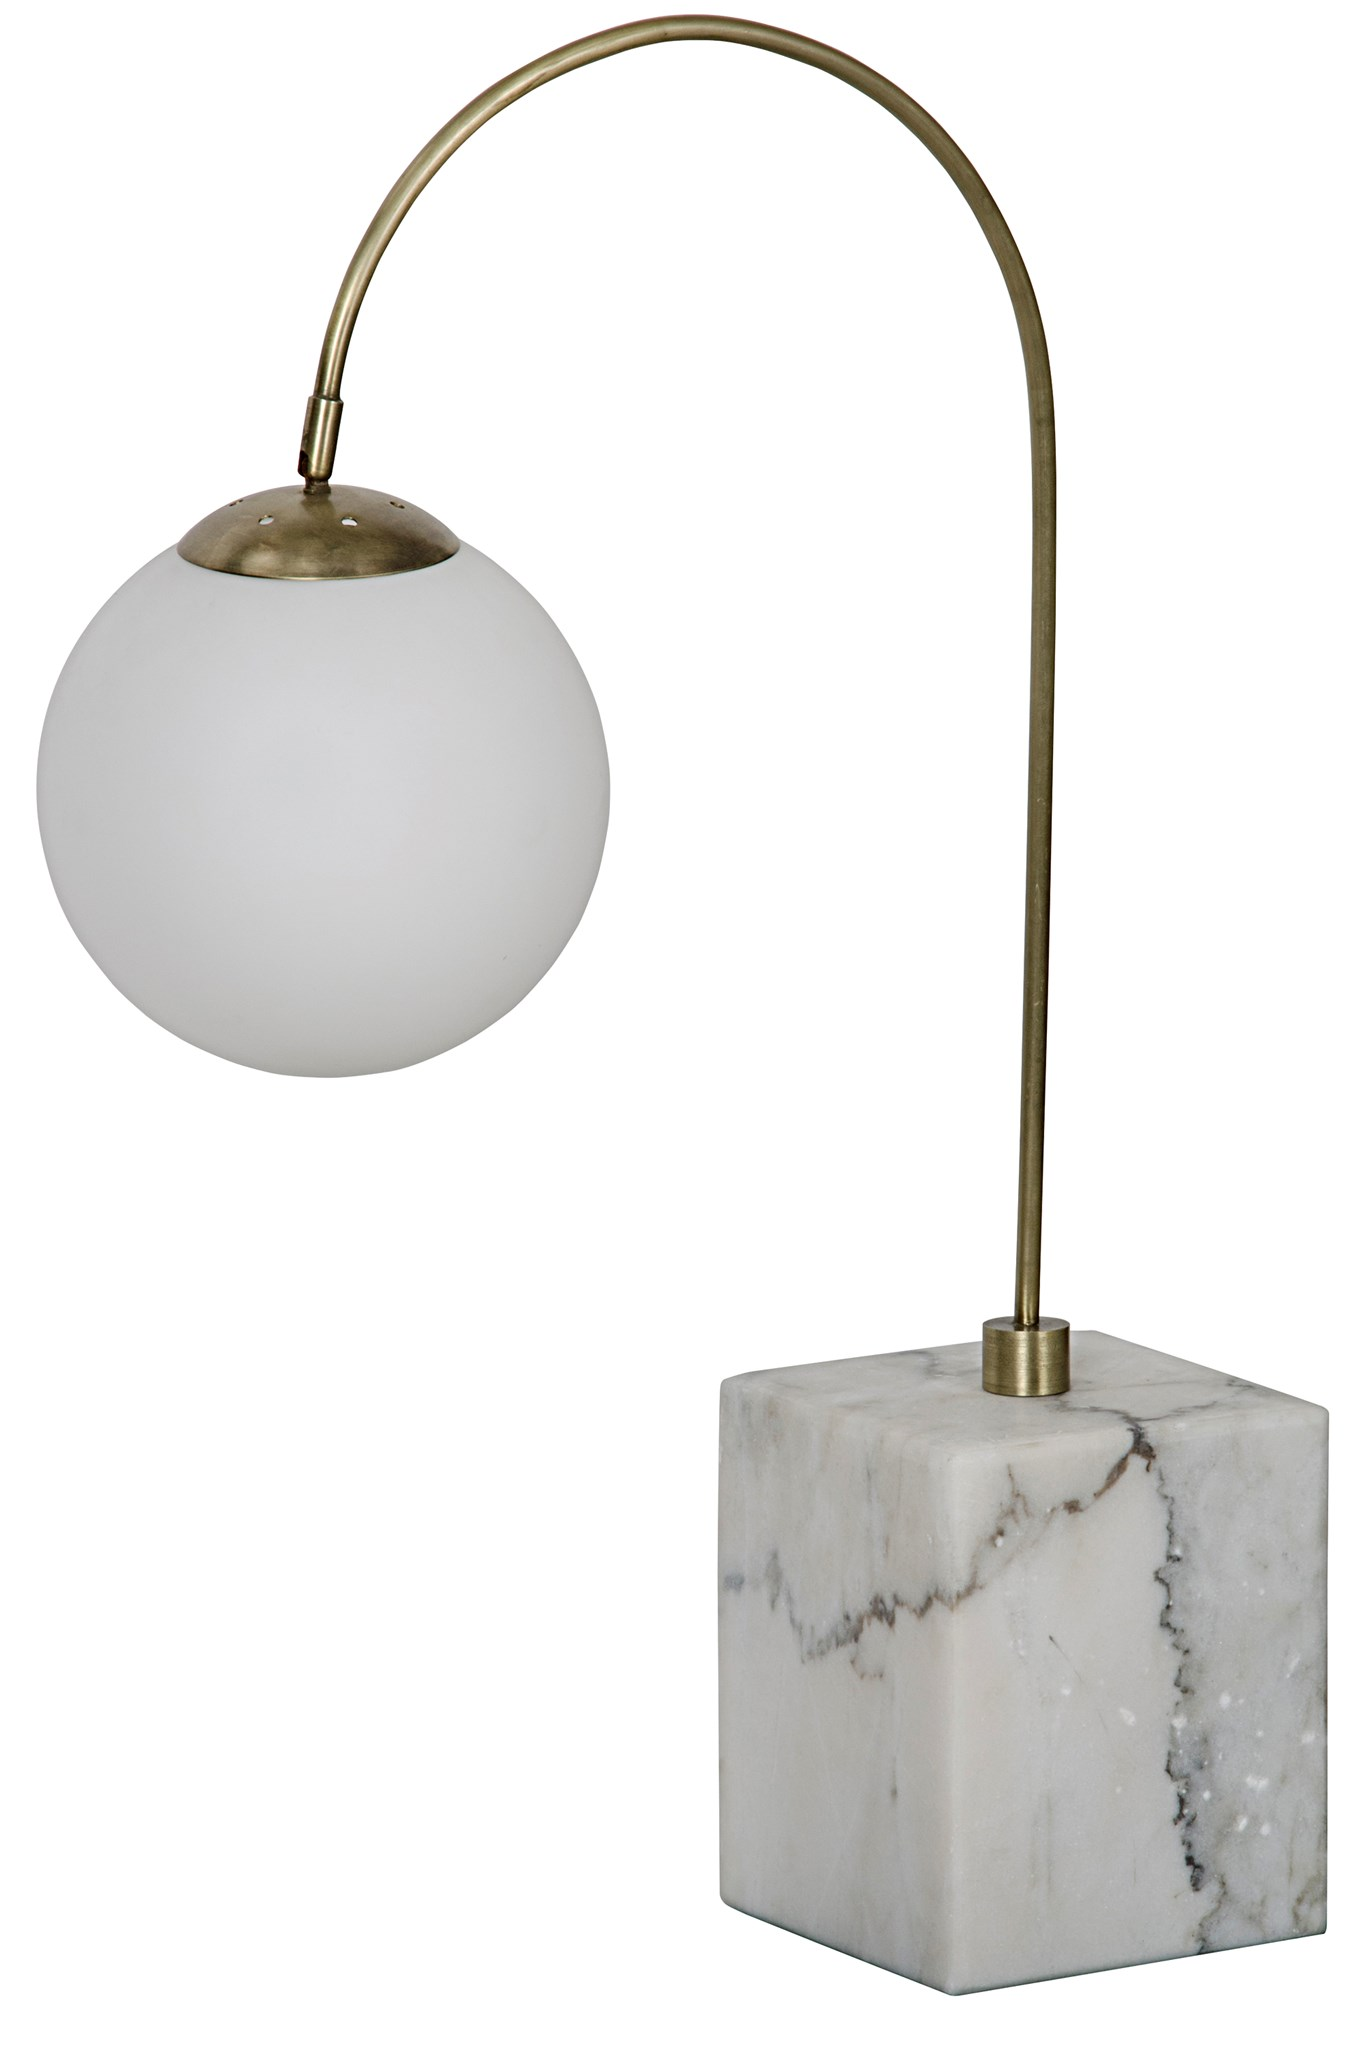 Qs soldity table lamp antique brass marble and metal quick download image geotapseo Image collections